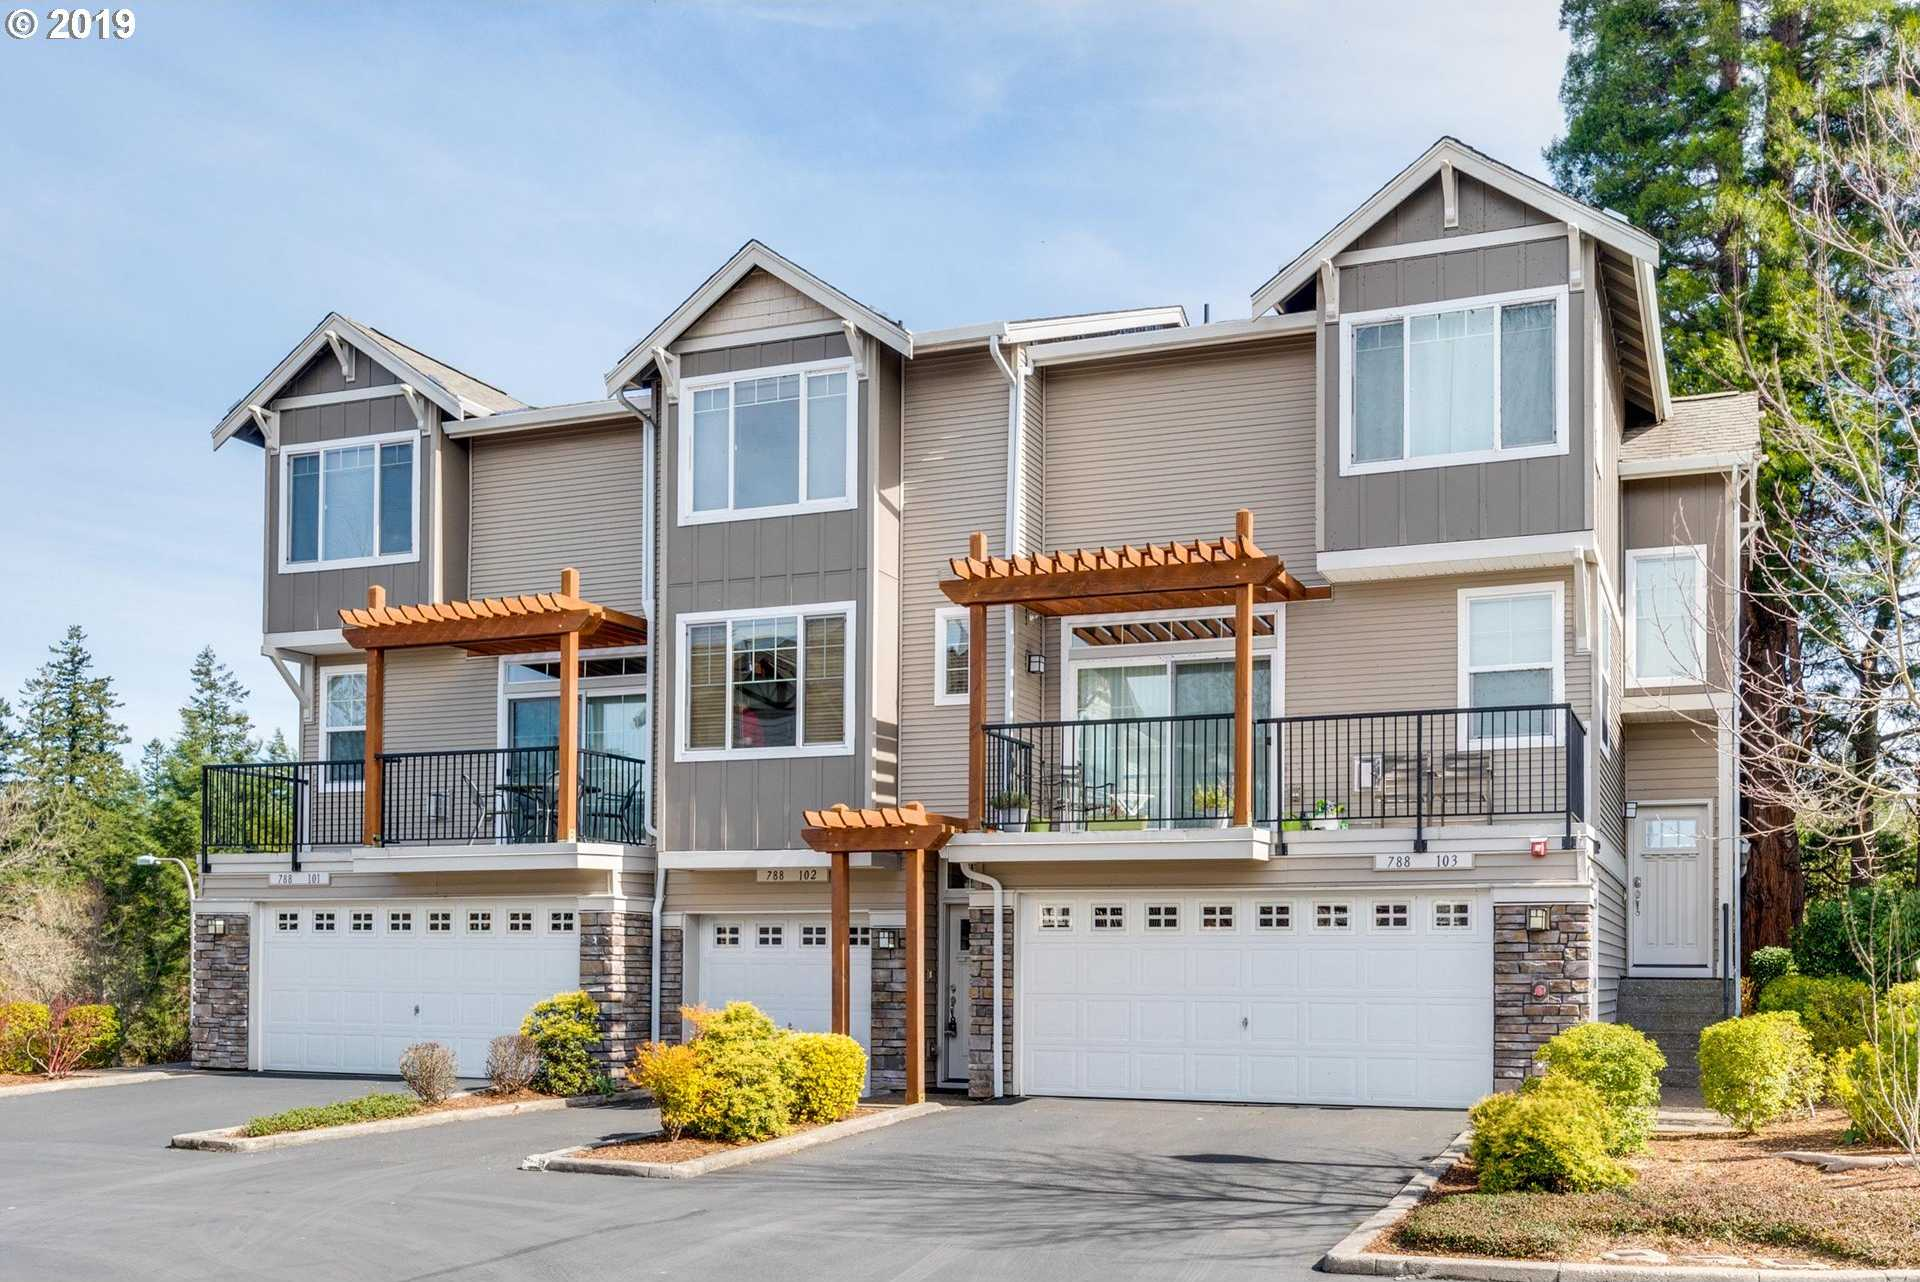 $319,900 - 2Br/3Ba -  for Sale in Timberland Reserve, Portland